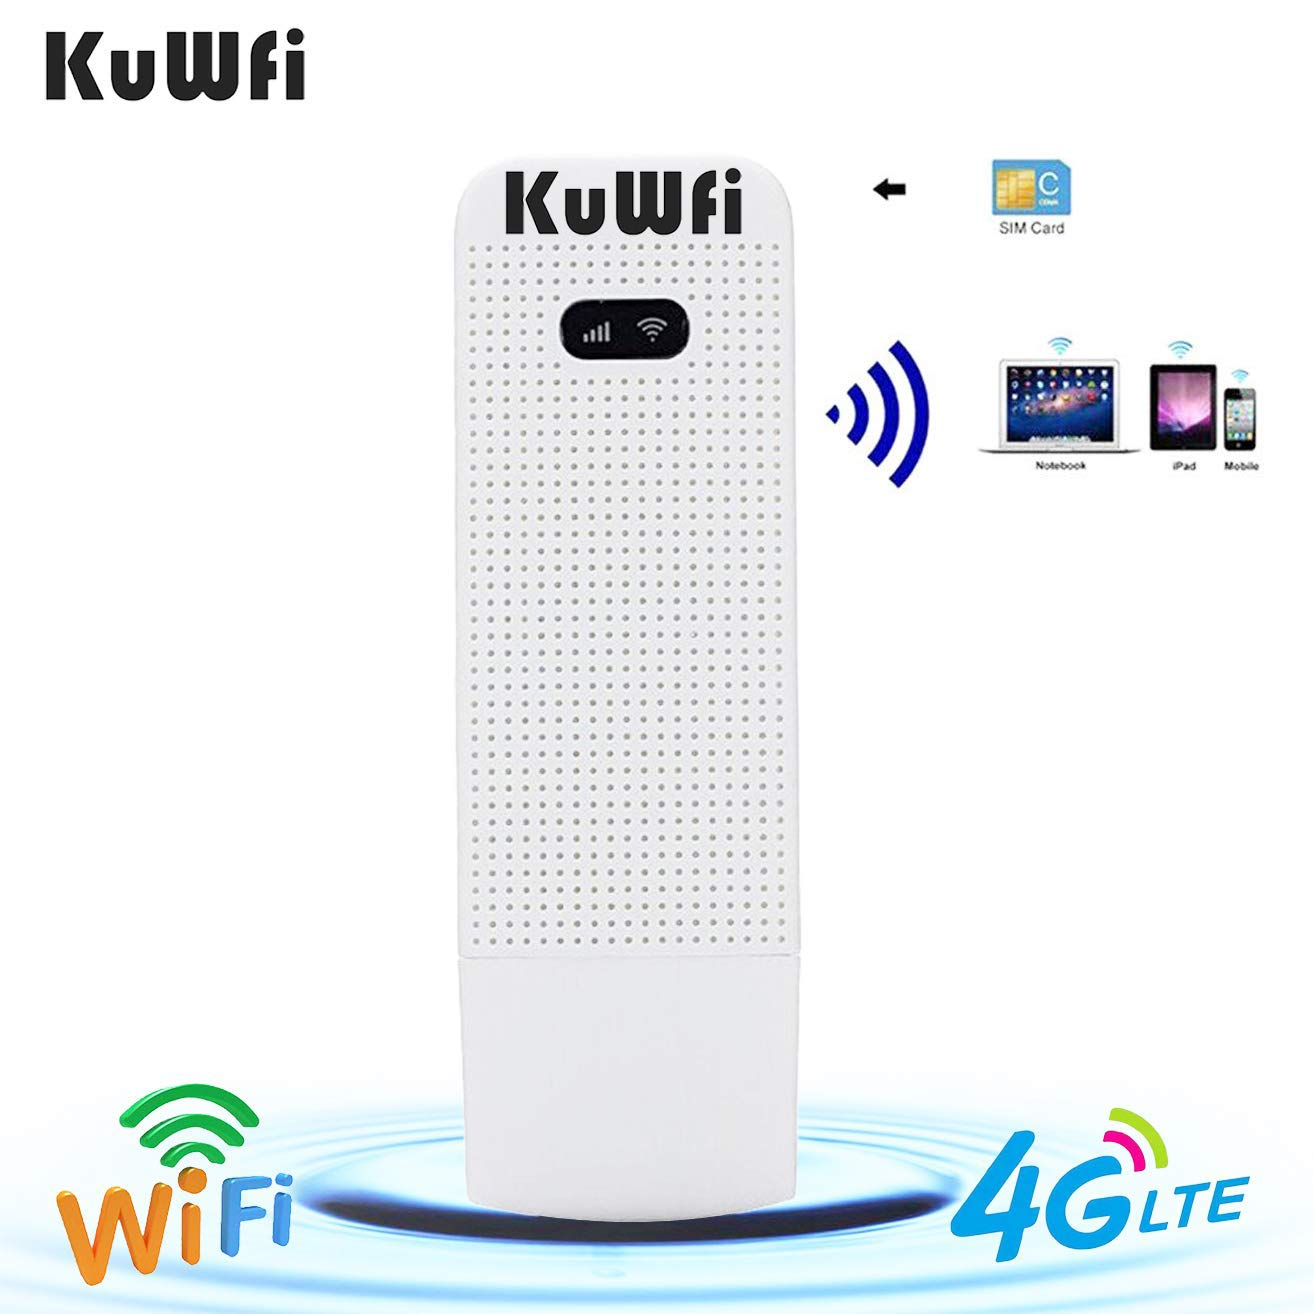 KuWFi 4G WiFi Modem LTE Mobile Hotspot USB Dongle Mini Router Support SIM Card 4G/3G +Wi-Fi Wireless Access Provide for Car or Bus (not Including SIM Card) for USA/CA/Mexico by KuWFi